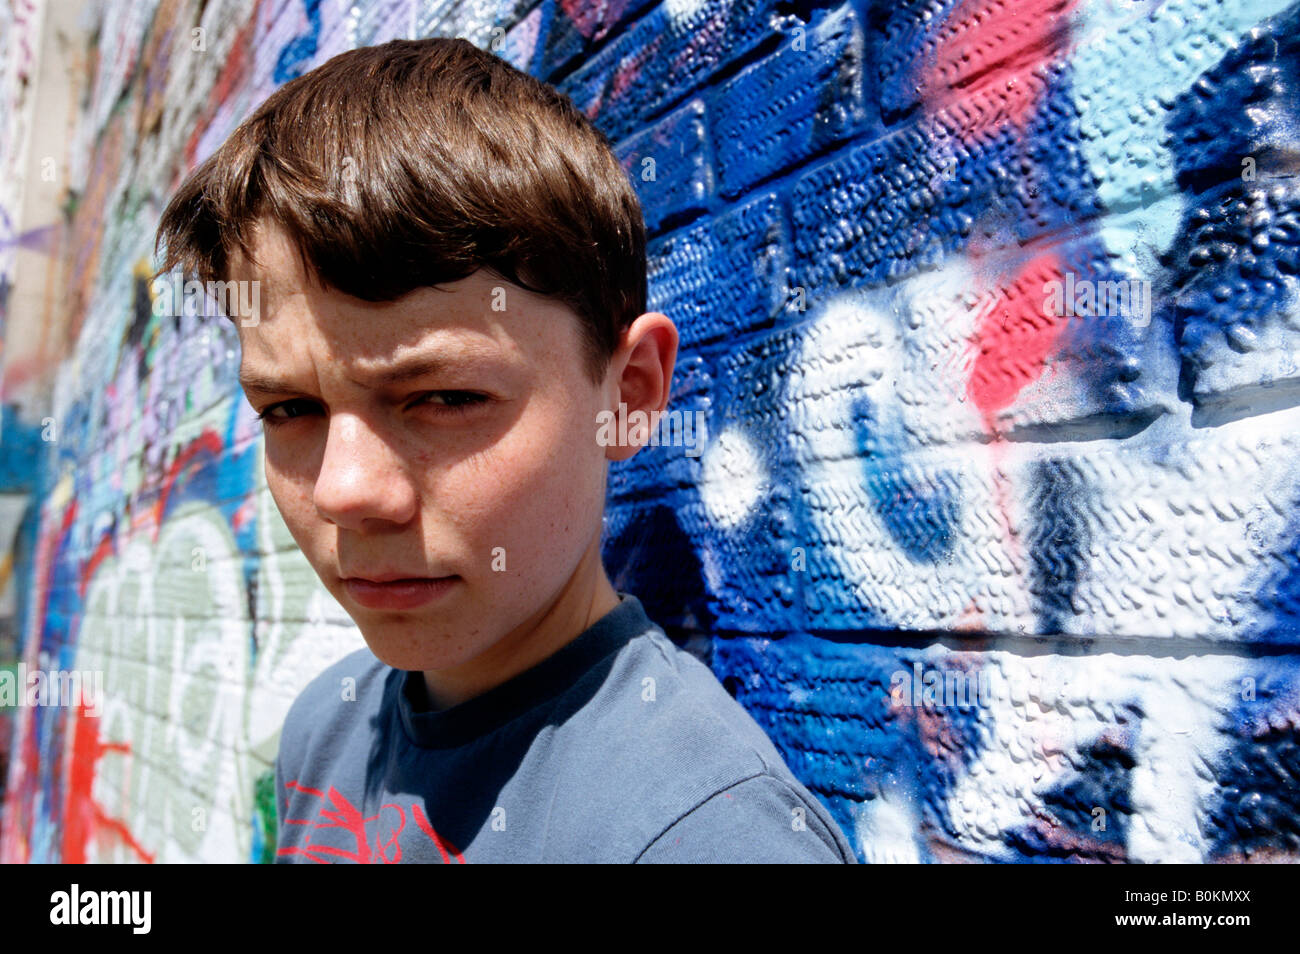 Teenaged boy in front of graffitti wall - Stock Image